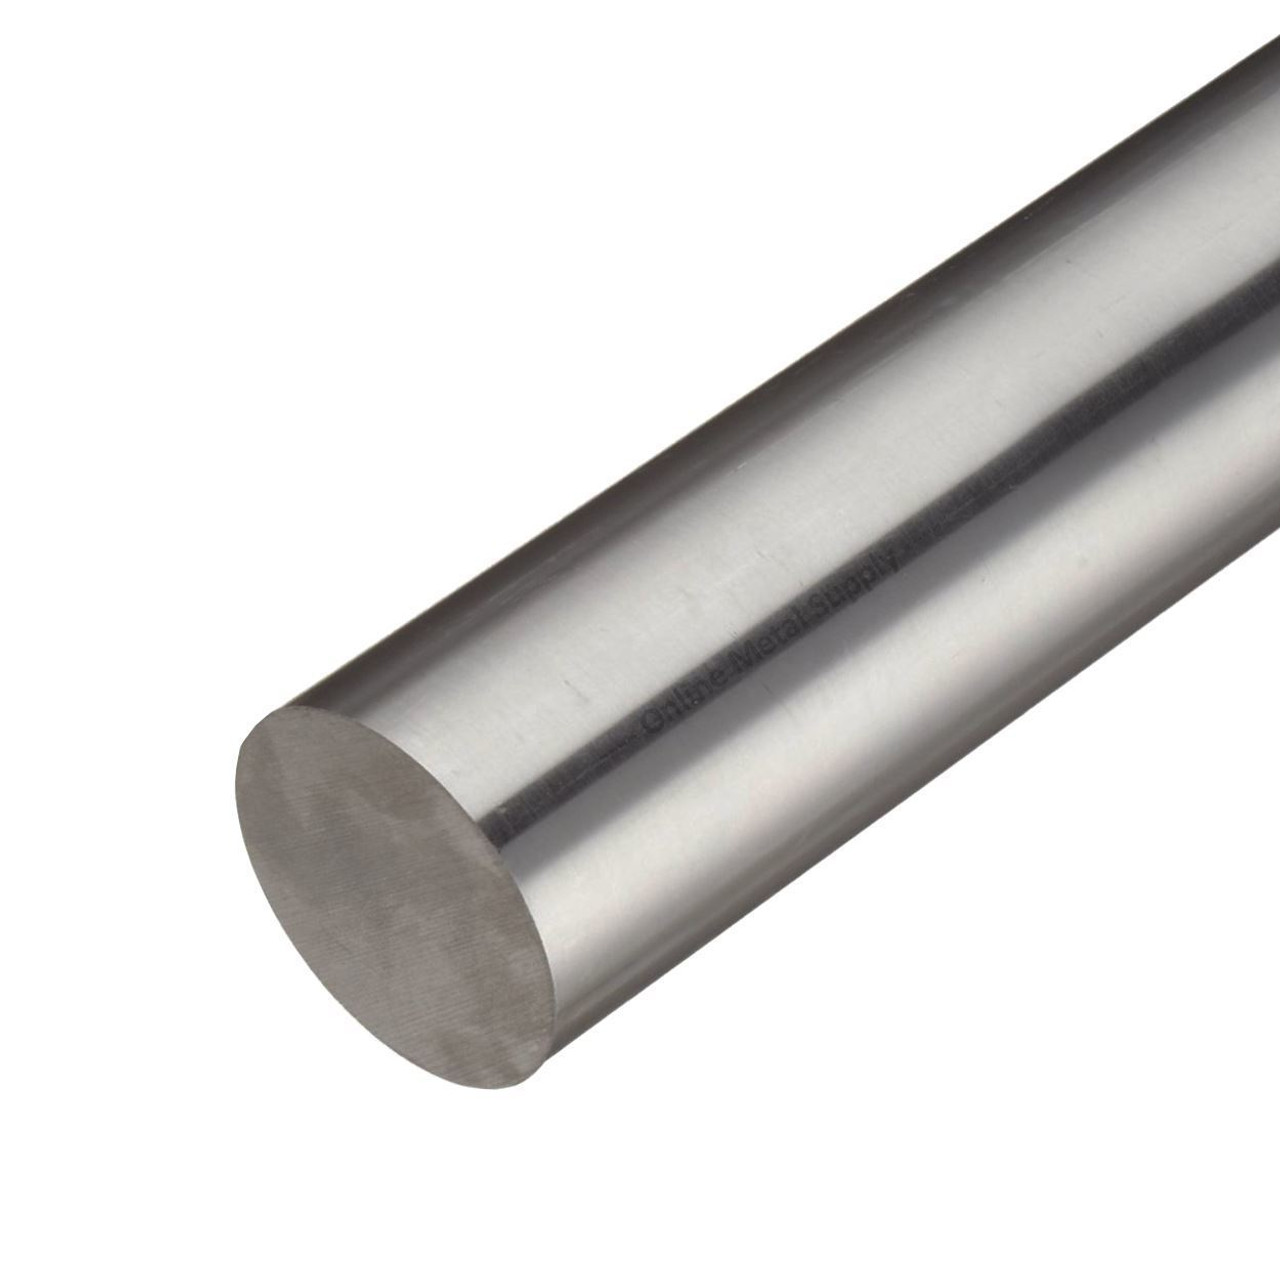 3.250 (3-1/4 inch) x 12 inches, 17-4 Cond A CF Stainless Steel Round Rod